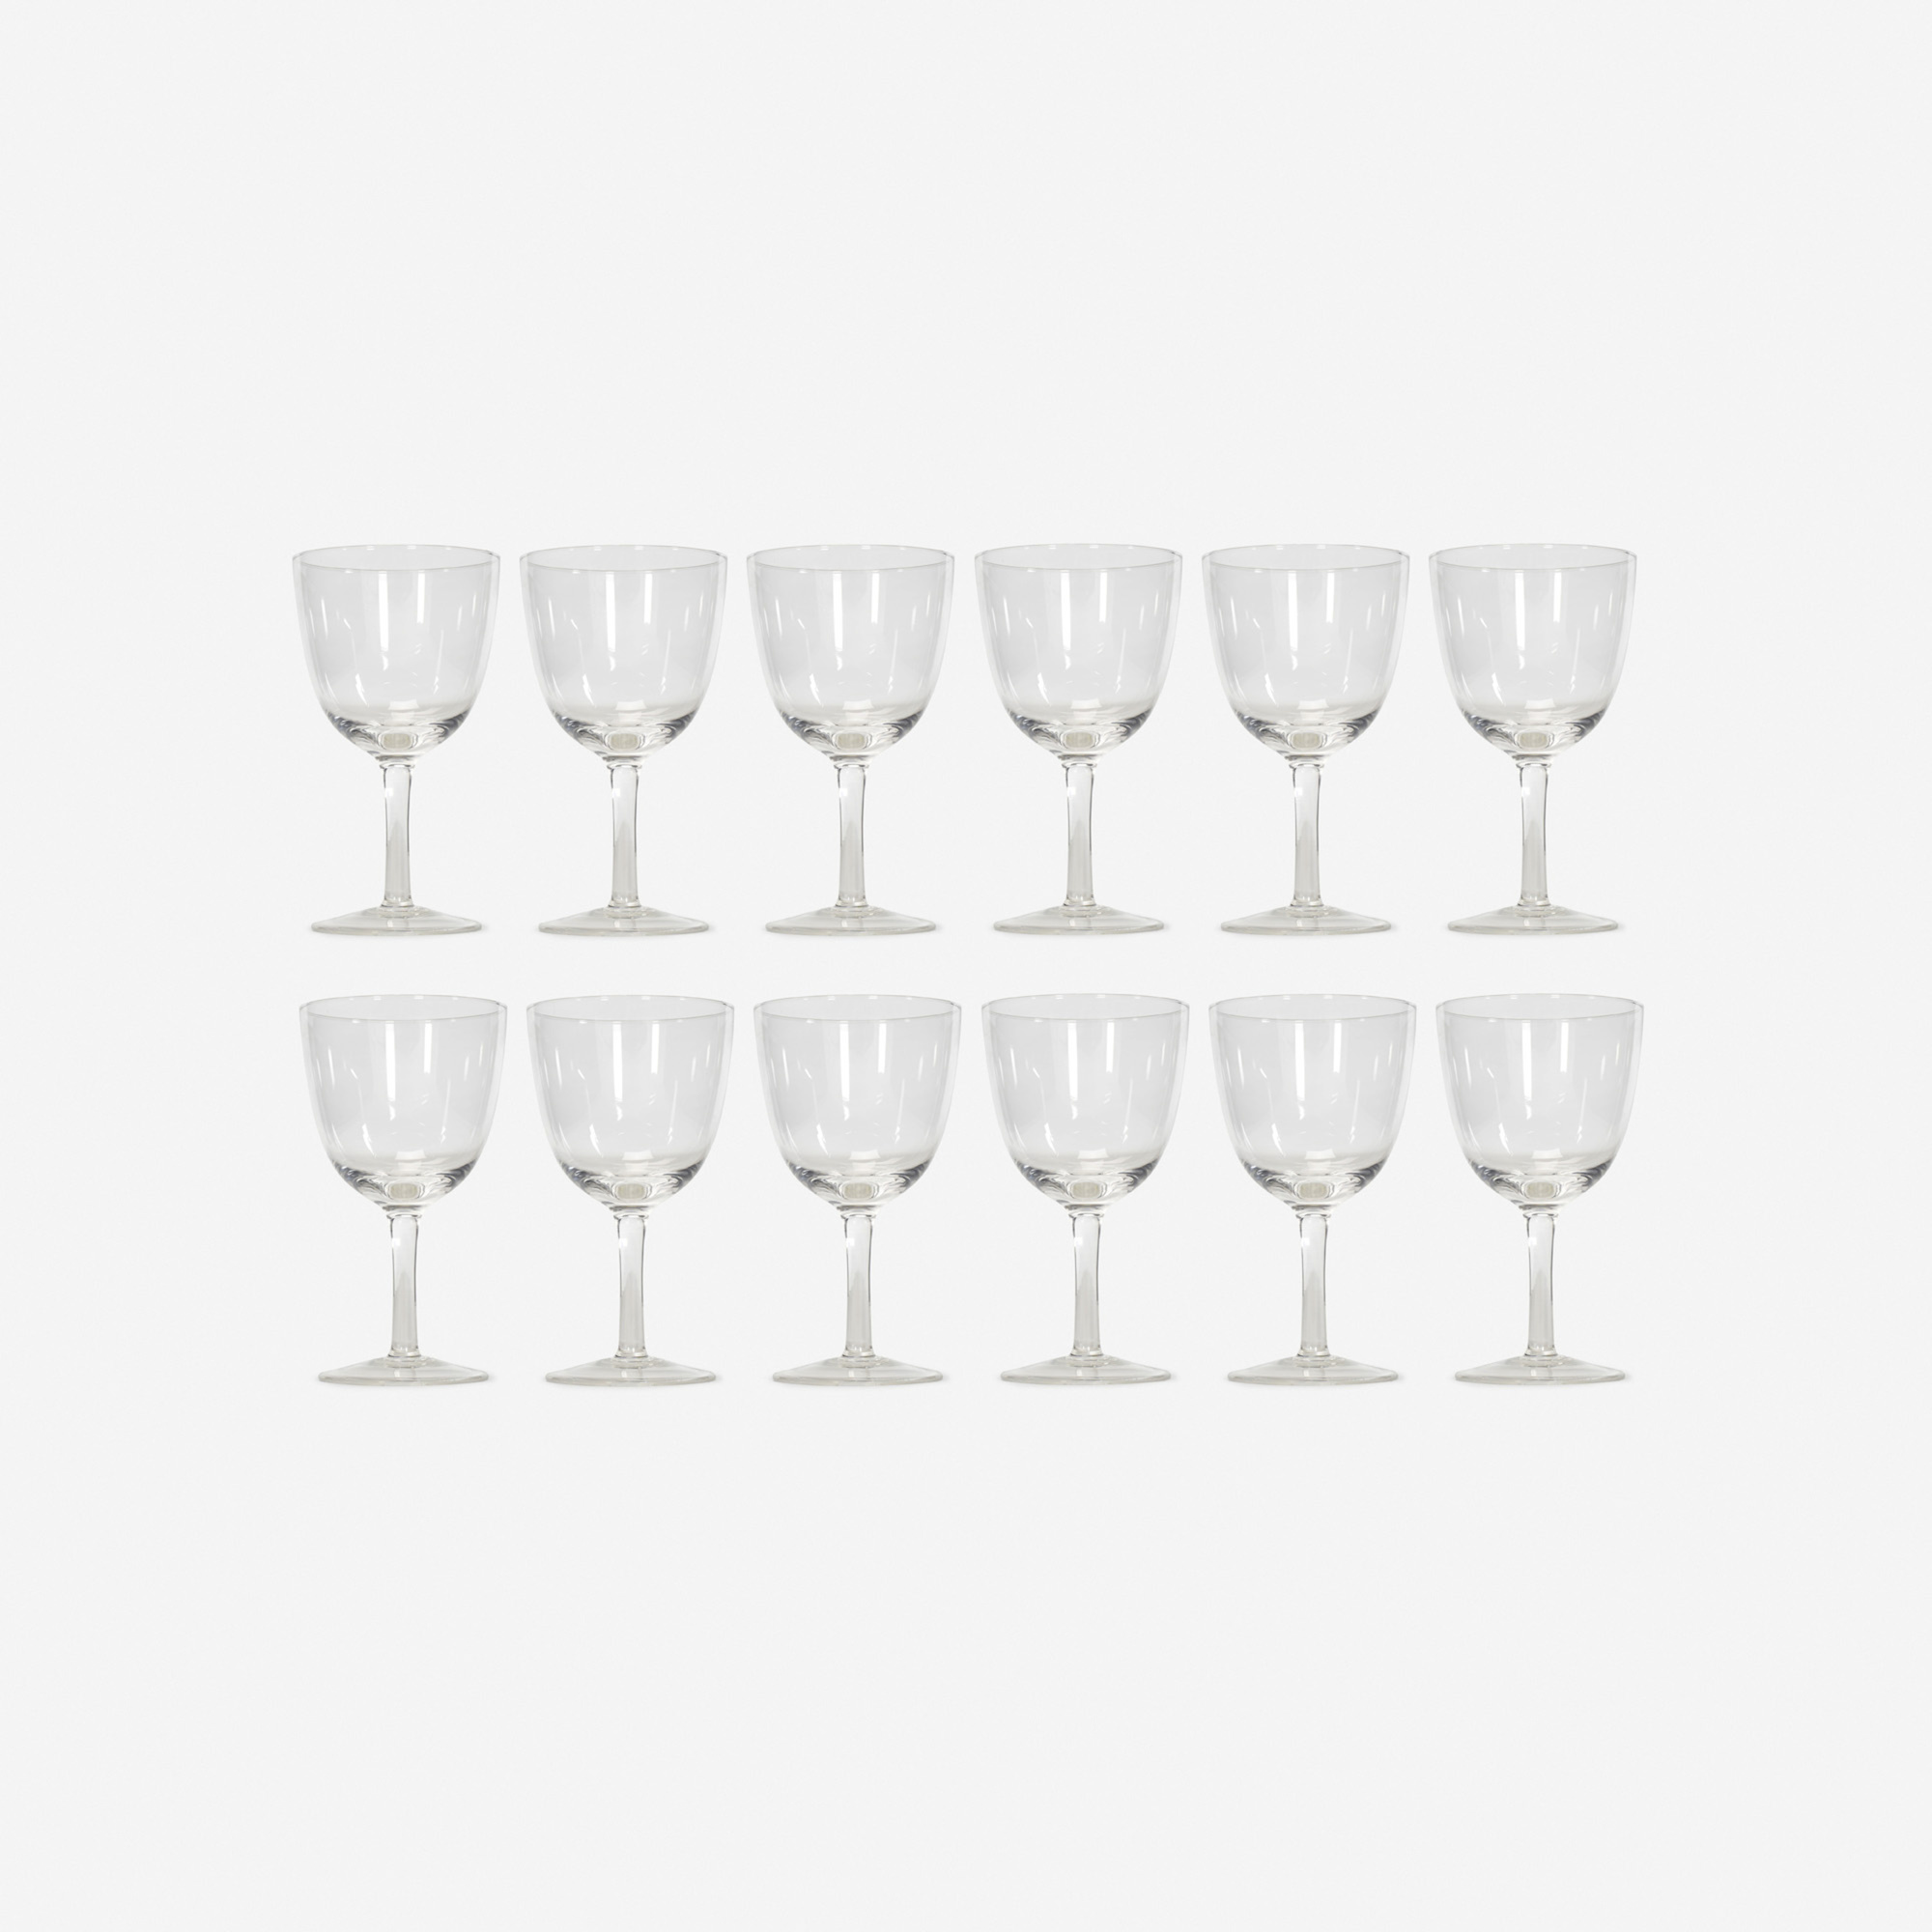 150: Garth and Ada Louise Huxtable / Water glasses from The Four Seasons, set of twelve (1 of 1)